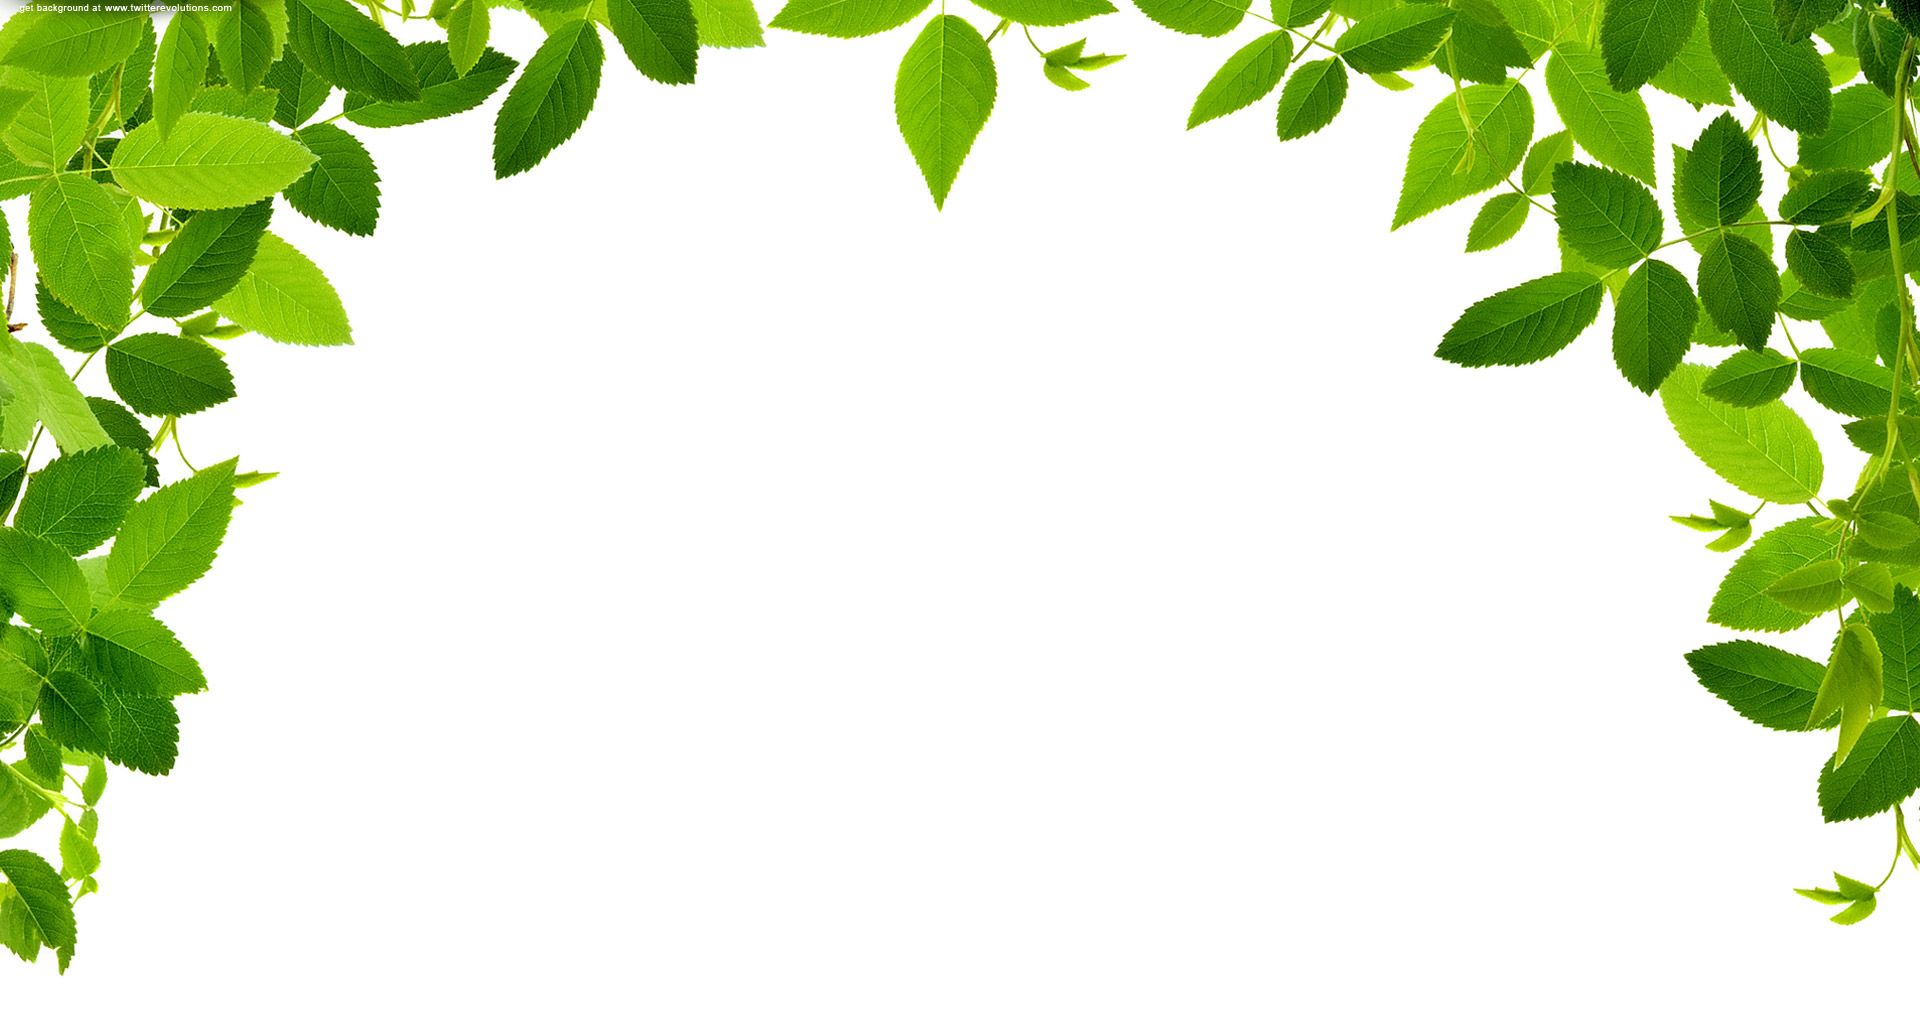 Free clipart leaves border. Real images at clker